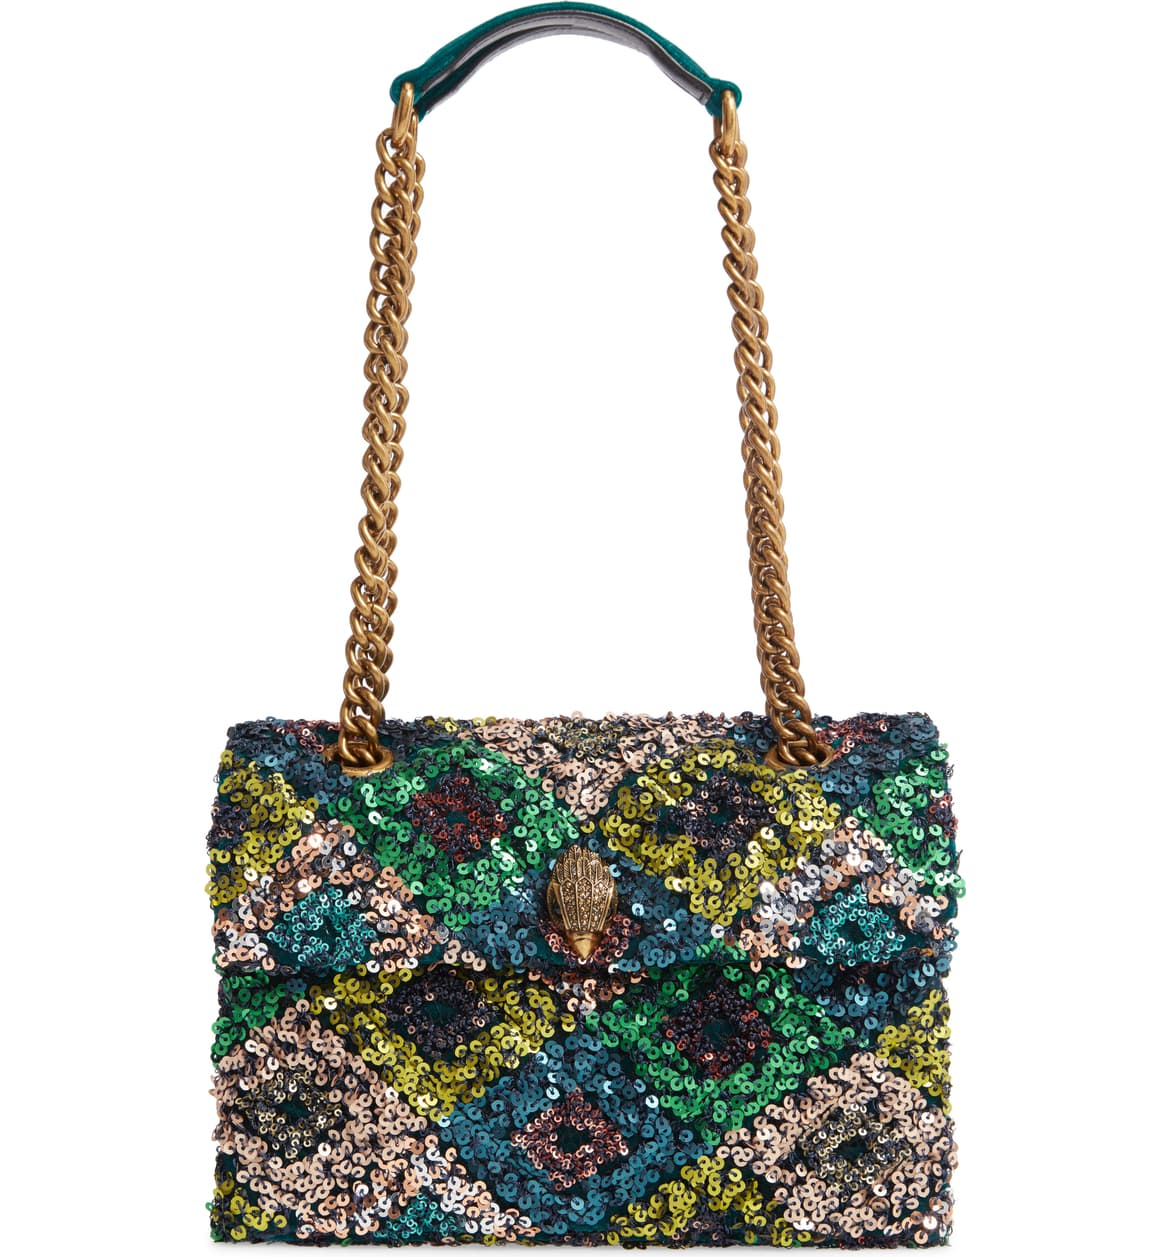 "<a  href=""https://shop.nordstrom.com/s/kurt-geiger-london-kensington-sequin-embellished-shoulder-bag/5317582/full?origin=keywordsearch-personalizedsort&breadcrumb=Home%2FAll%20Results&color=blue%20other"" target=""_blank"" title=""https://shop.nordstrom.com/s/kurt-geiger-london-kensington-sequin-embellished-shoulder-bag/5317582/full?origin=keywordsearch-personalizedsort&breadcrumb=Home%2FAll%20Results&color=blue%20other"">Kurt Geiger London Kensington Sequin Embellished Shoulder Bag</a>{&nbsp;}- $195{&nbsp;}From cozy to gold hued to tailored, Nordstrom has the hottest trends for getting glam this holiday season! (Credit: Nordstrom)"